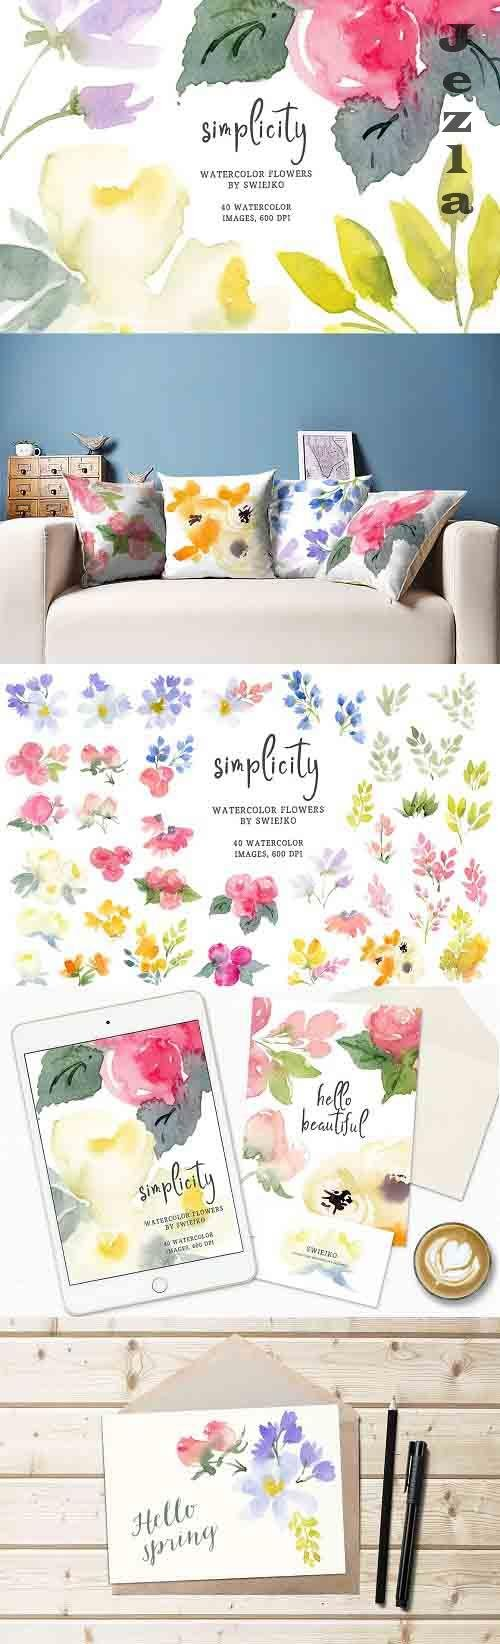 Simple watercolor flowers - 6023425